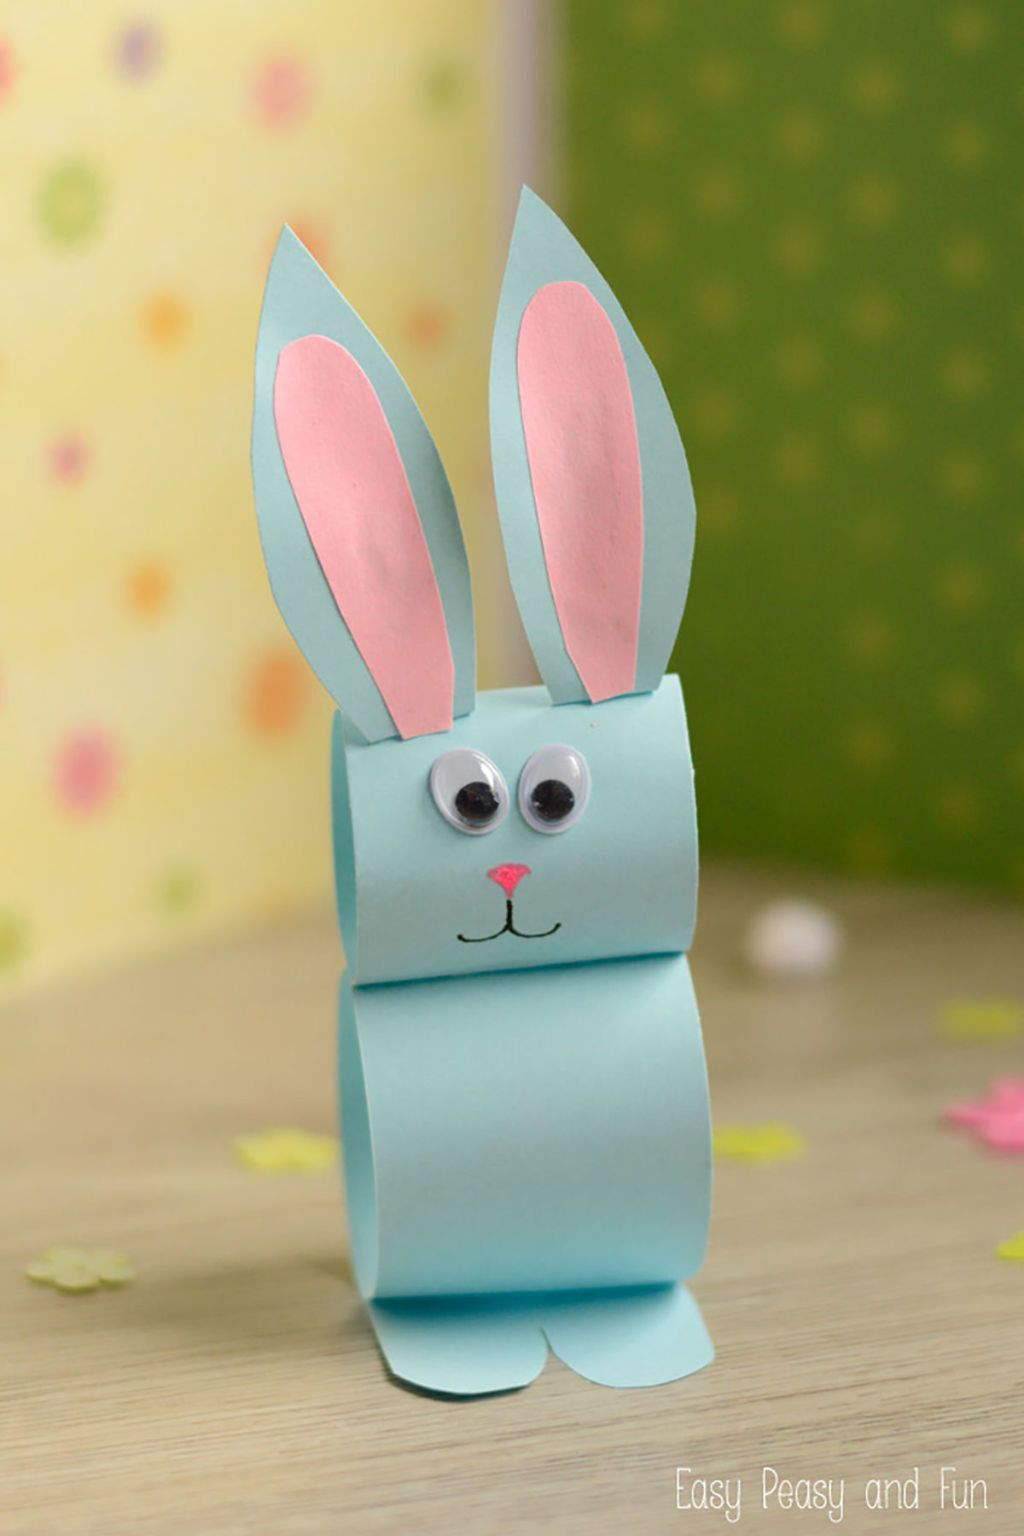 Adorable Easter Crafts For Kids And Grown Ups Alike